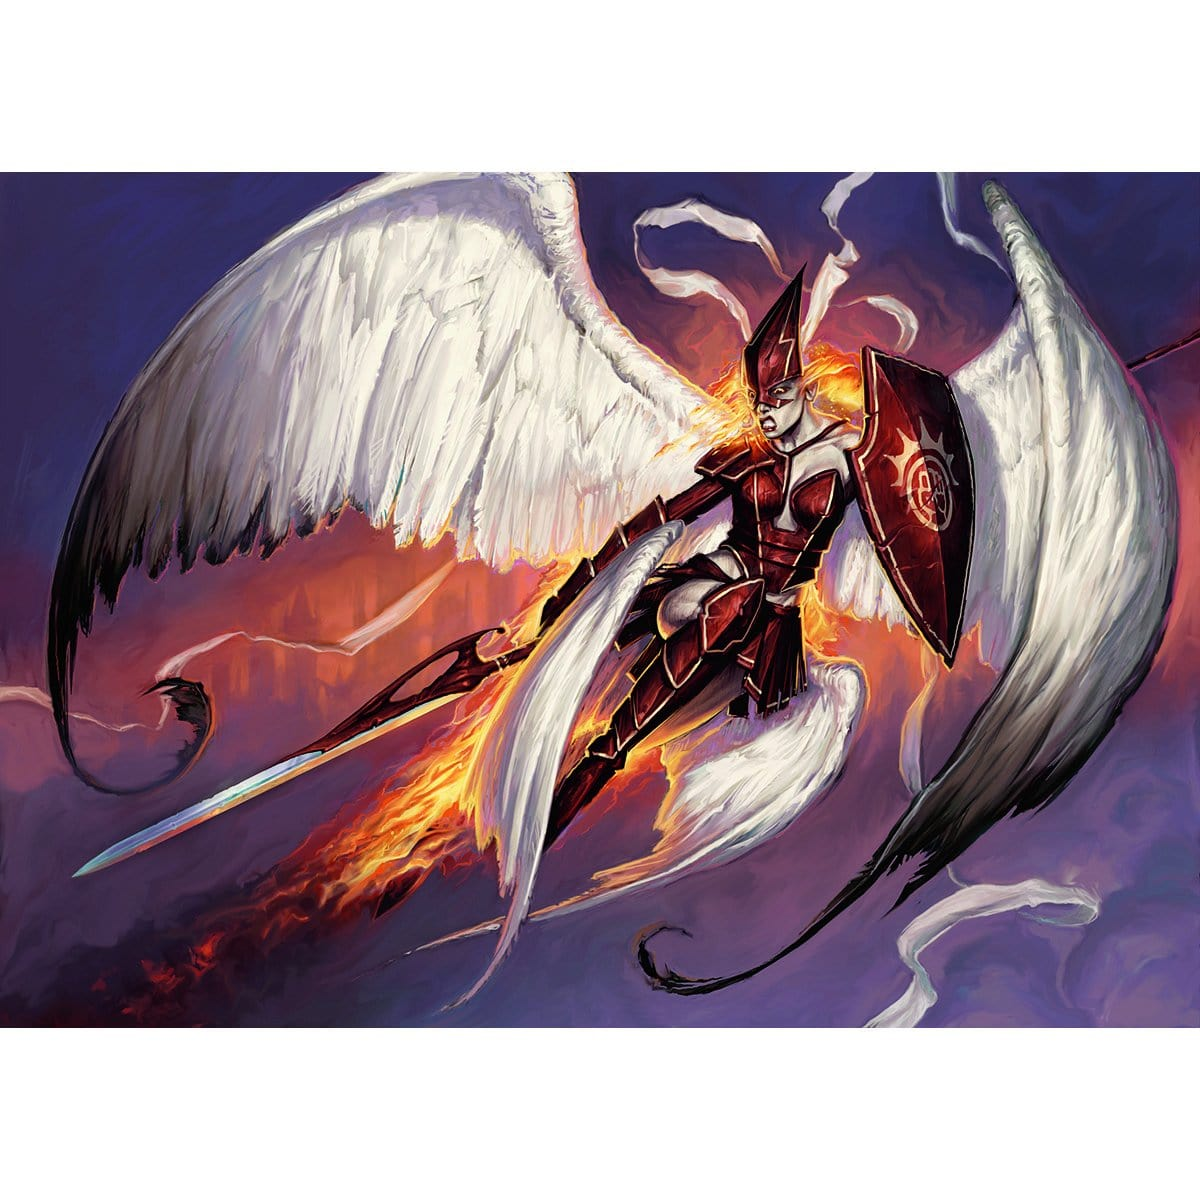 Firemane Angel Print - Print - Original Magic Art - Accessories for Magic the Gathering and other card games